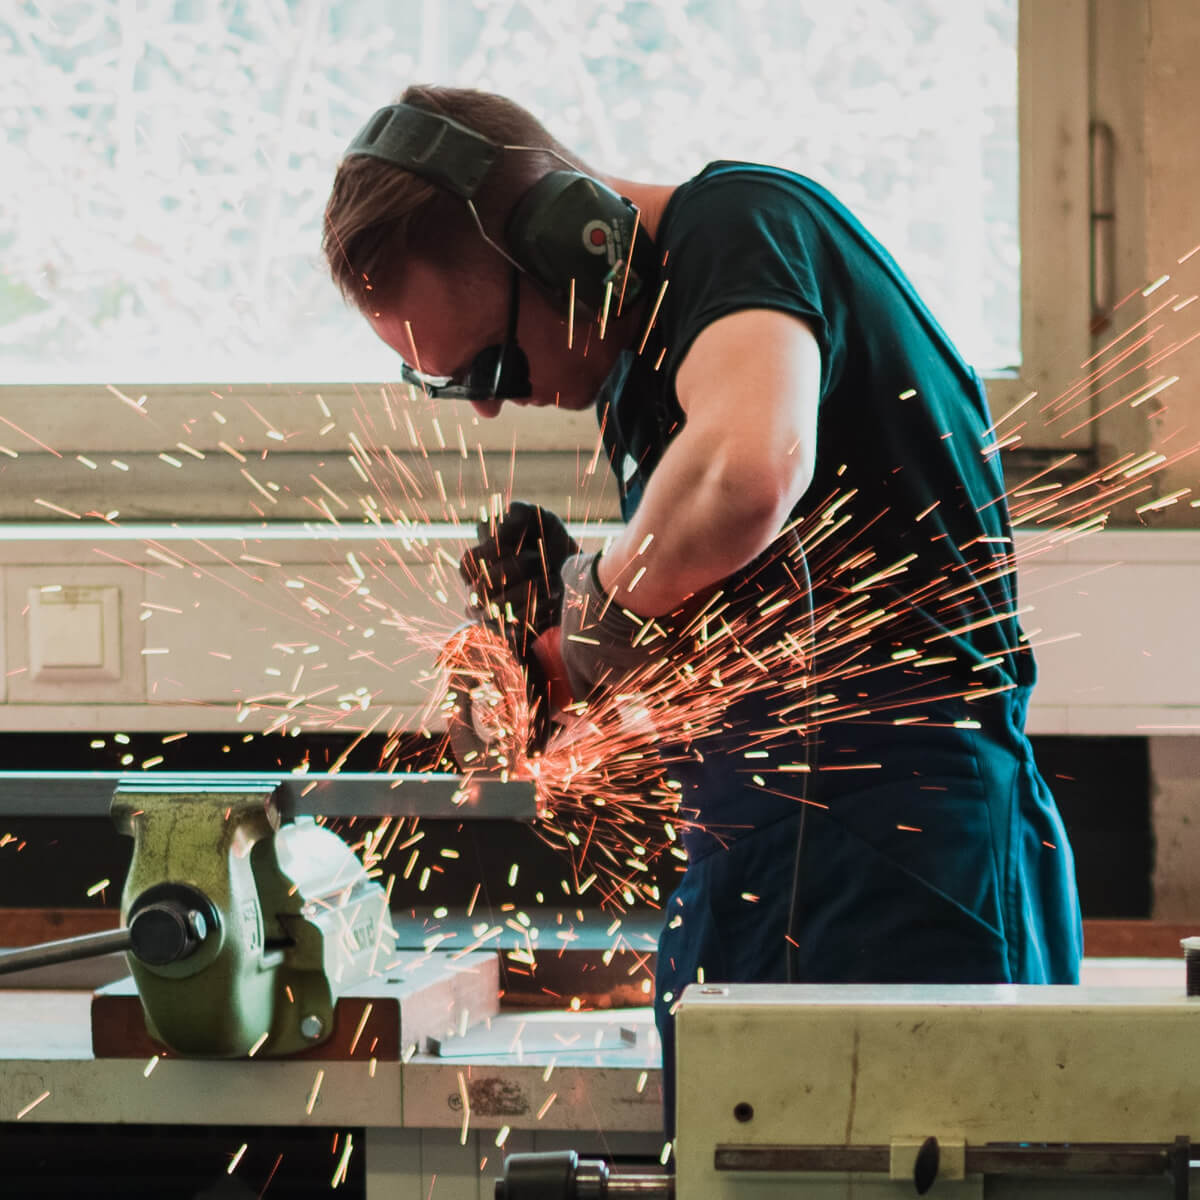 Man using saw with sparks flying out